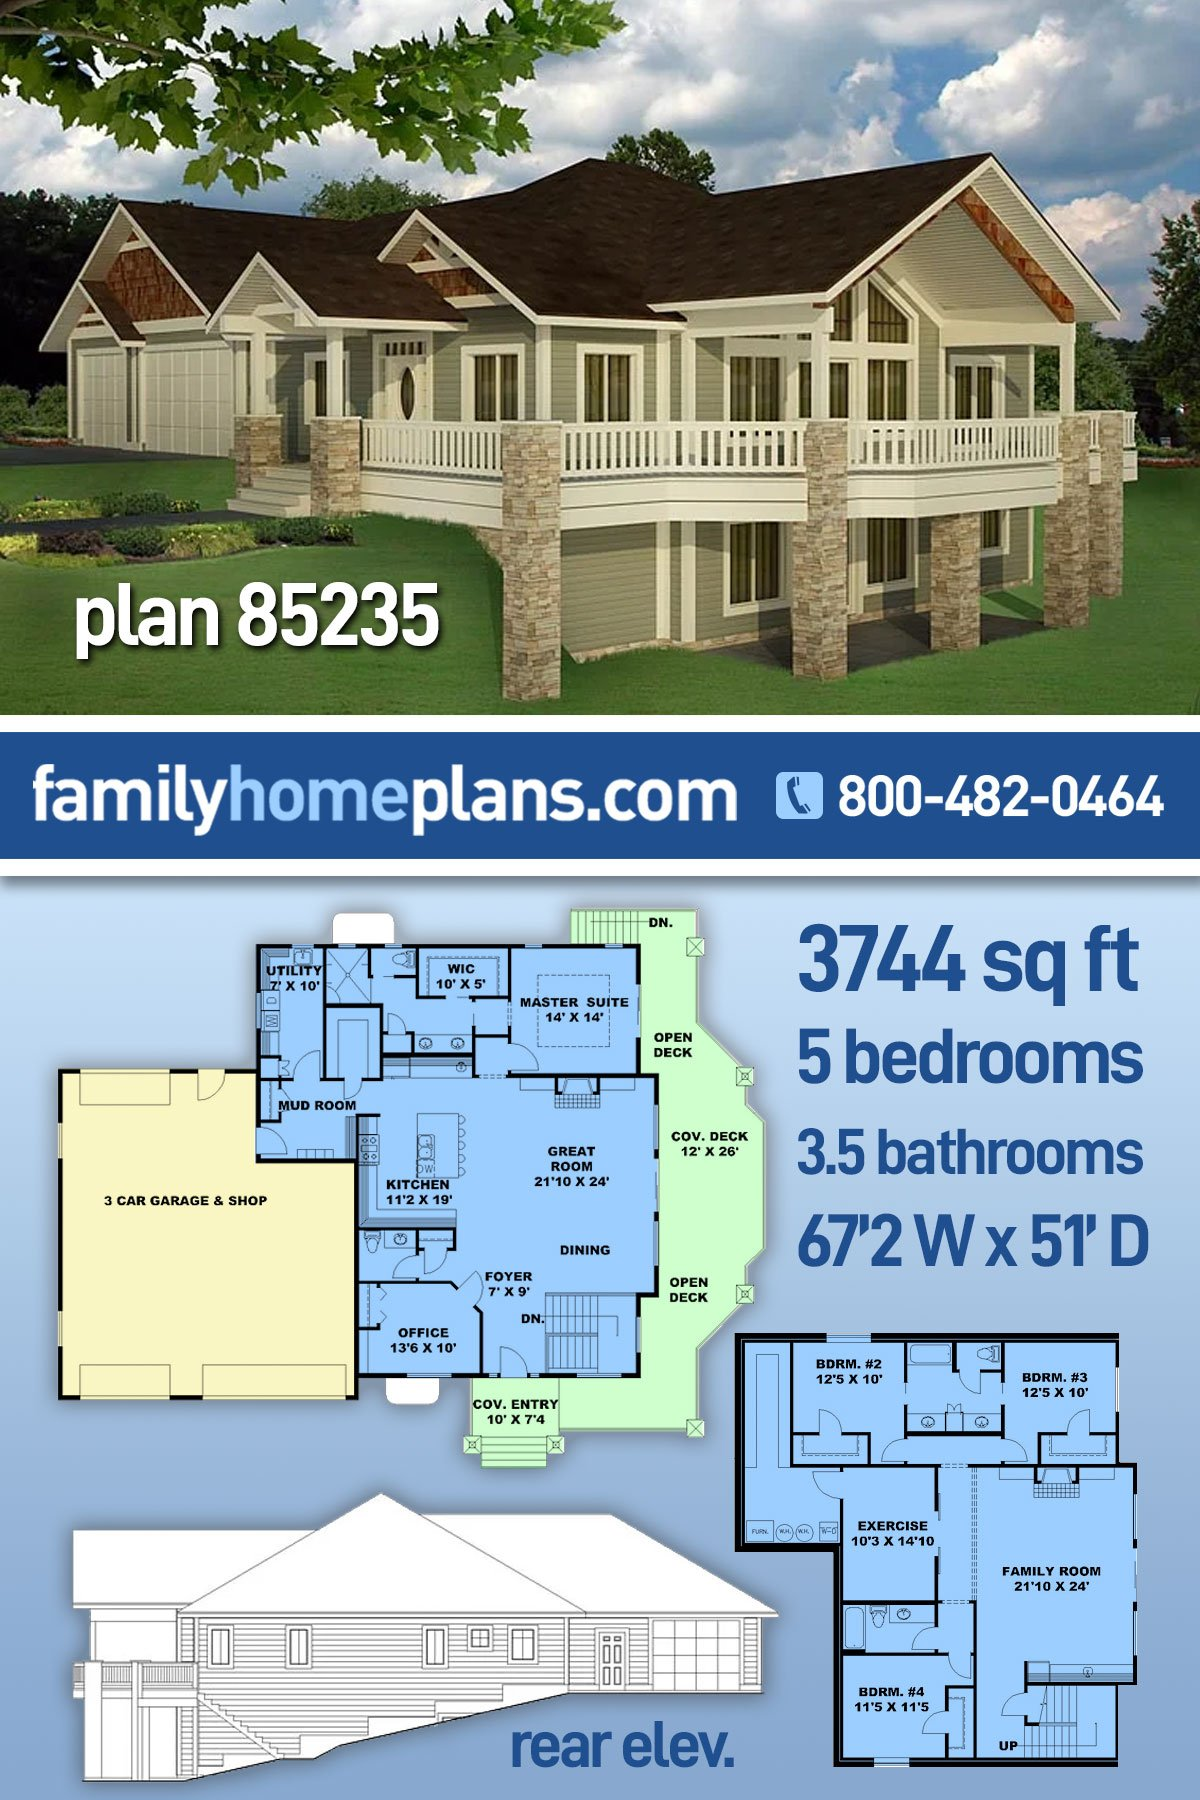 Bungalow, Contemporary, Craftsman, Traditional House Plan 85235 with 5 Beds, 4 Baths, 3 Car Garage